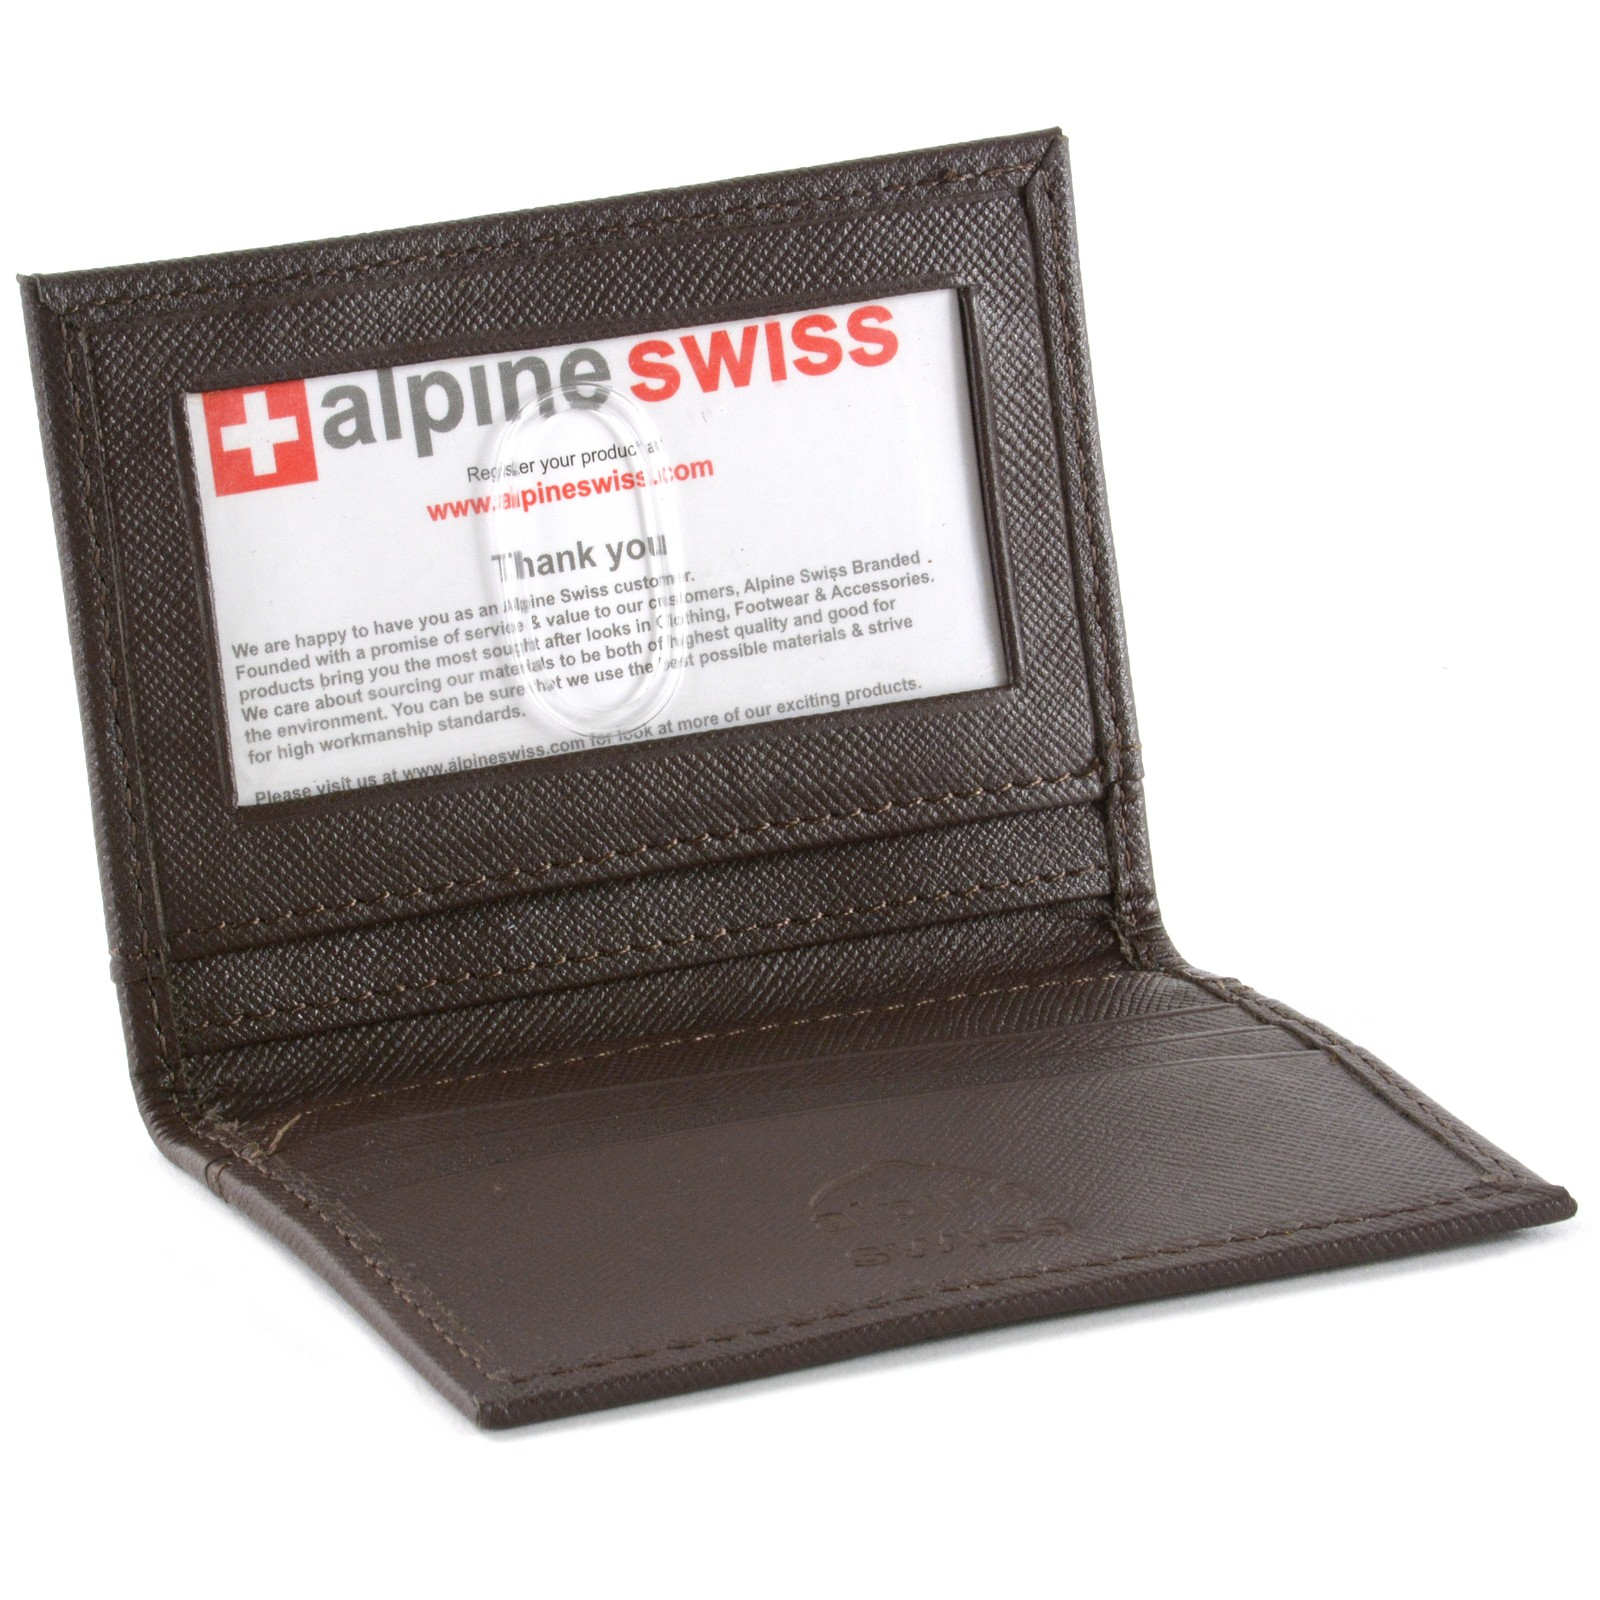 alpine swiss thin front pocket wallet business card case 2 id